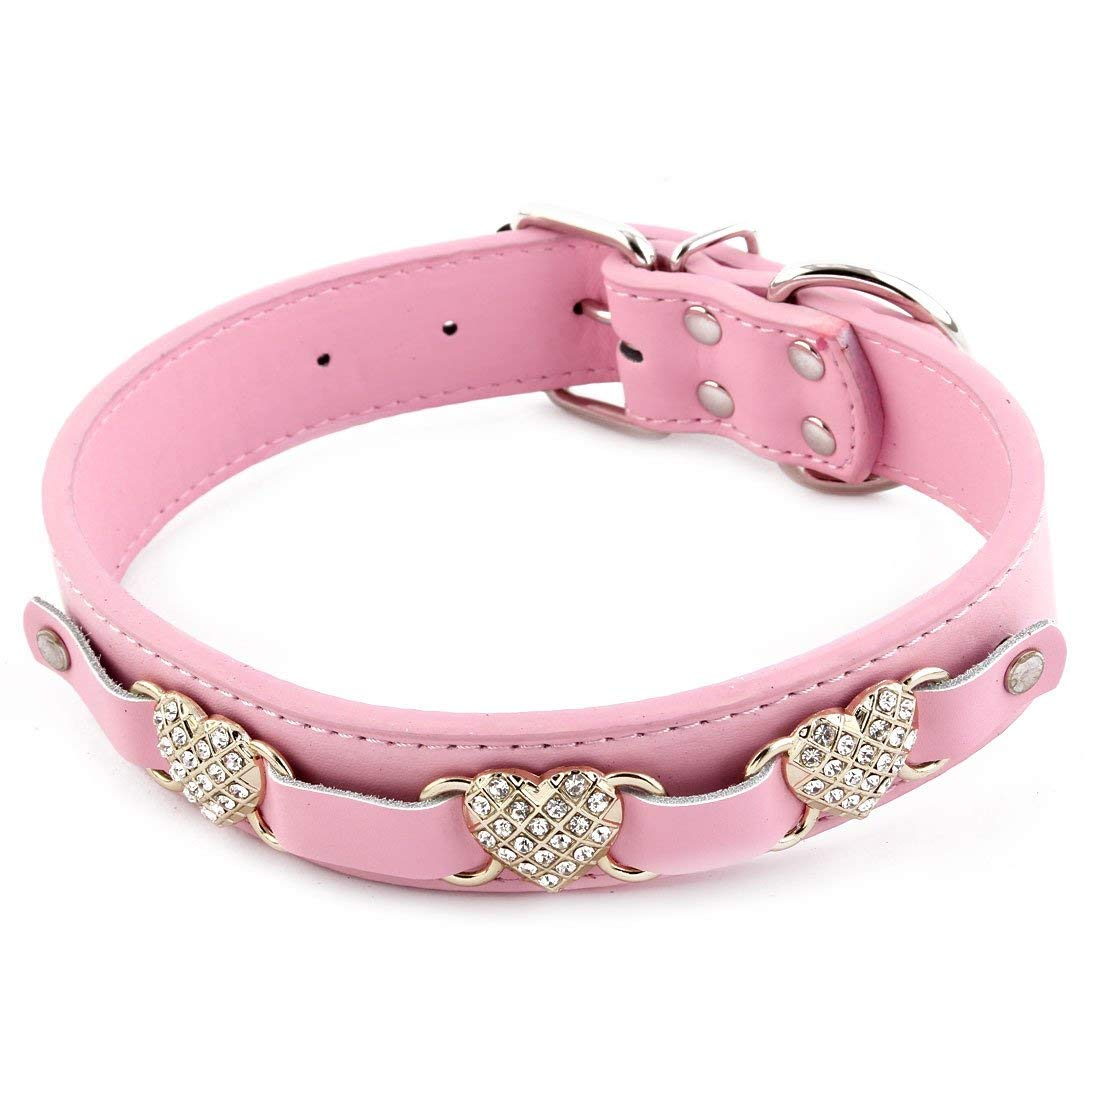 Faux Leather Pet Dog Doggy Heart Shaped Faux Rhinestone Adjustable Neck Collar Pink